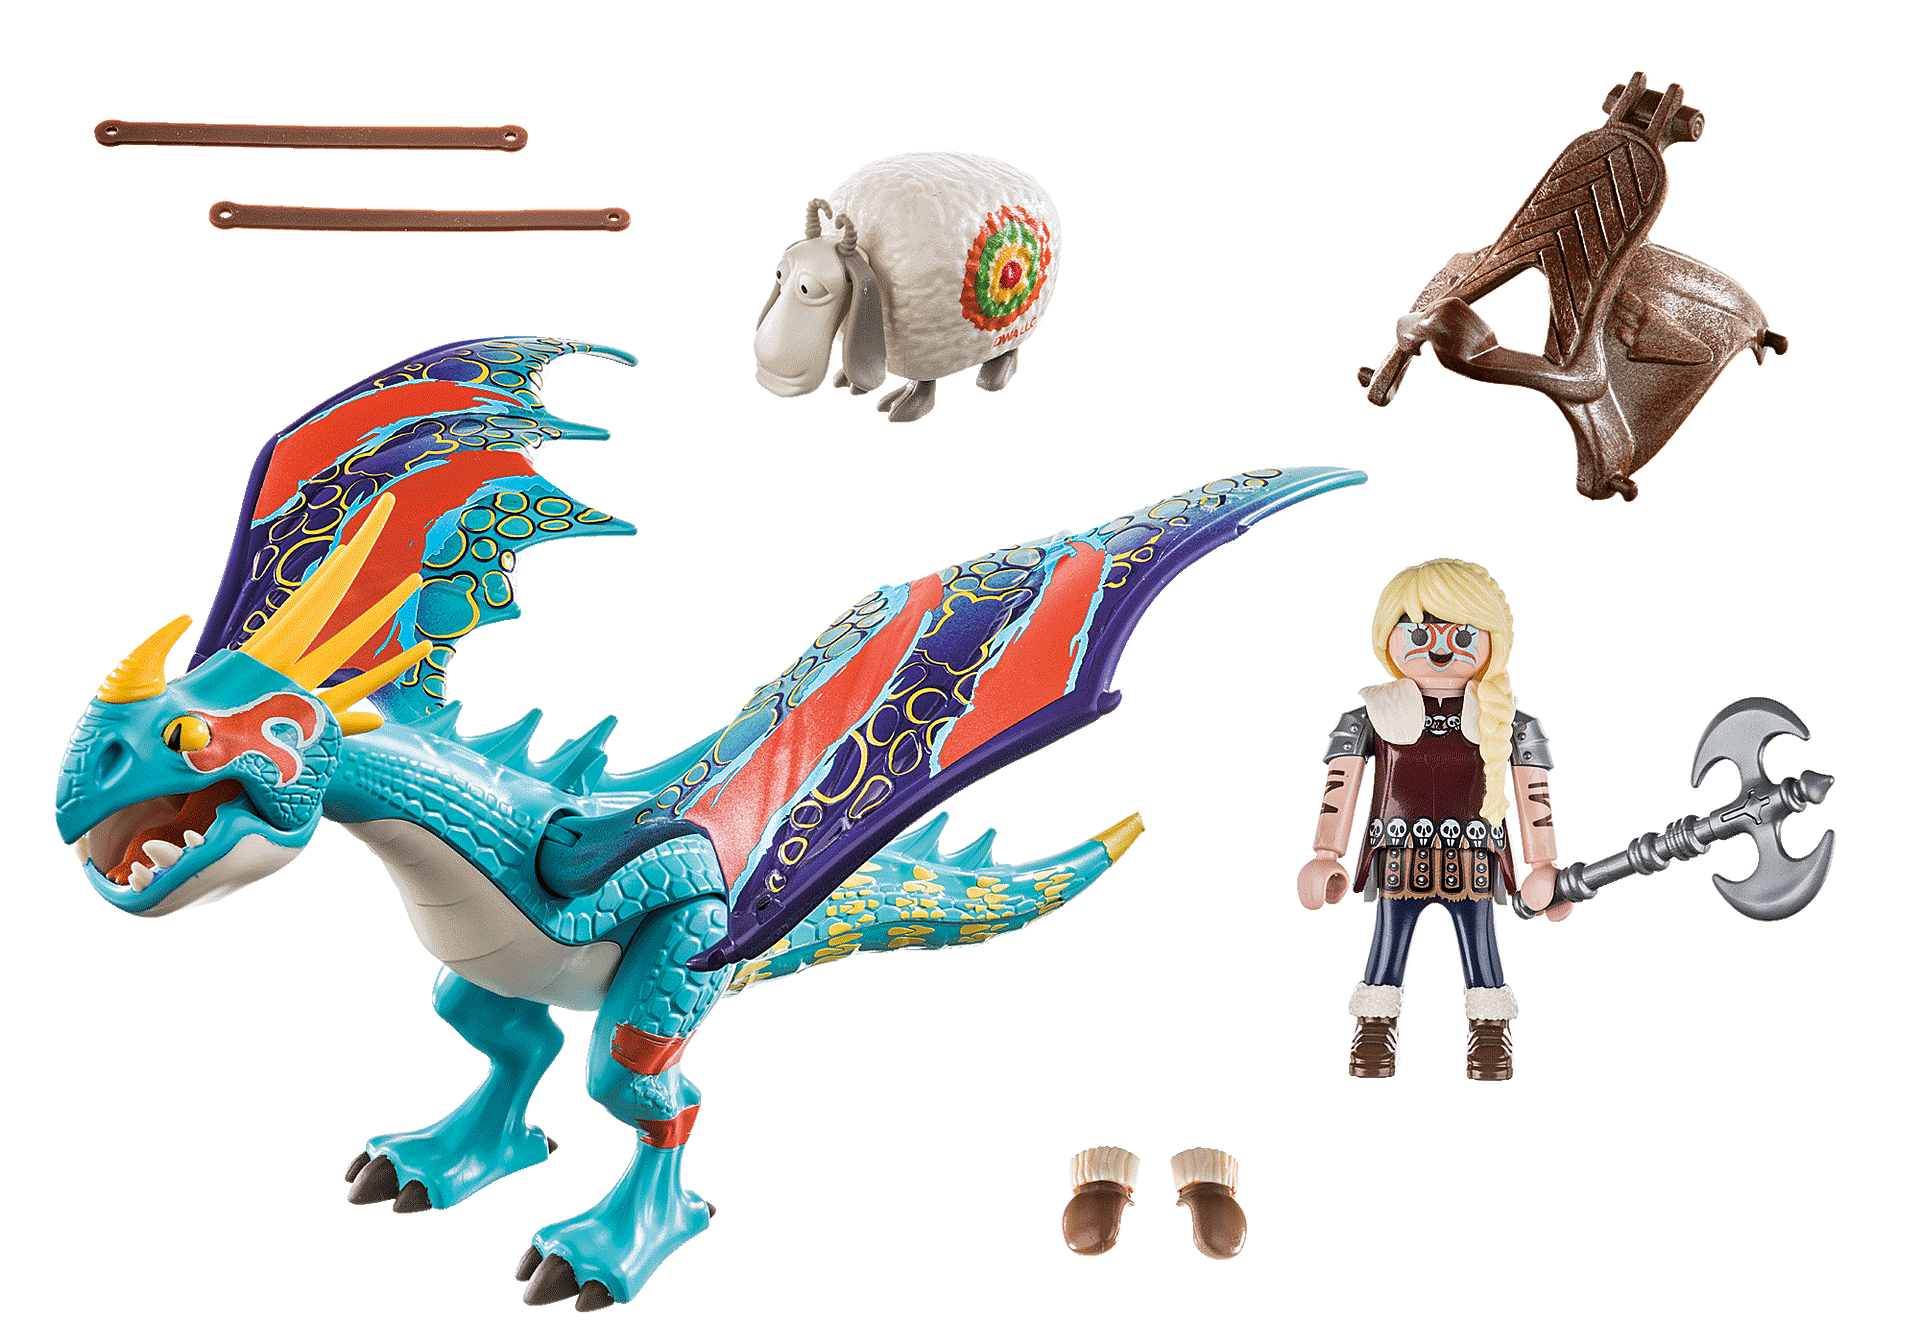 70728 Dragon Racing: Astrid and Stormfly zoom image3